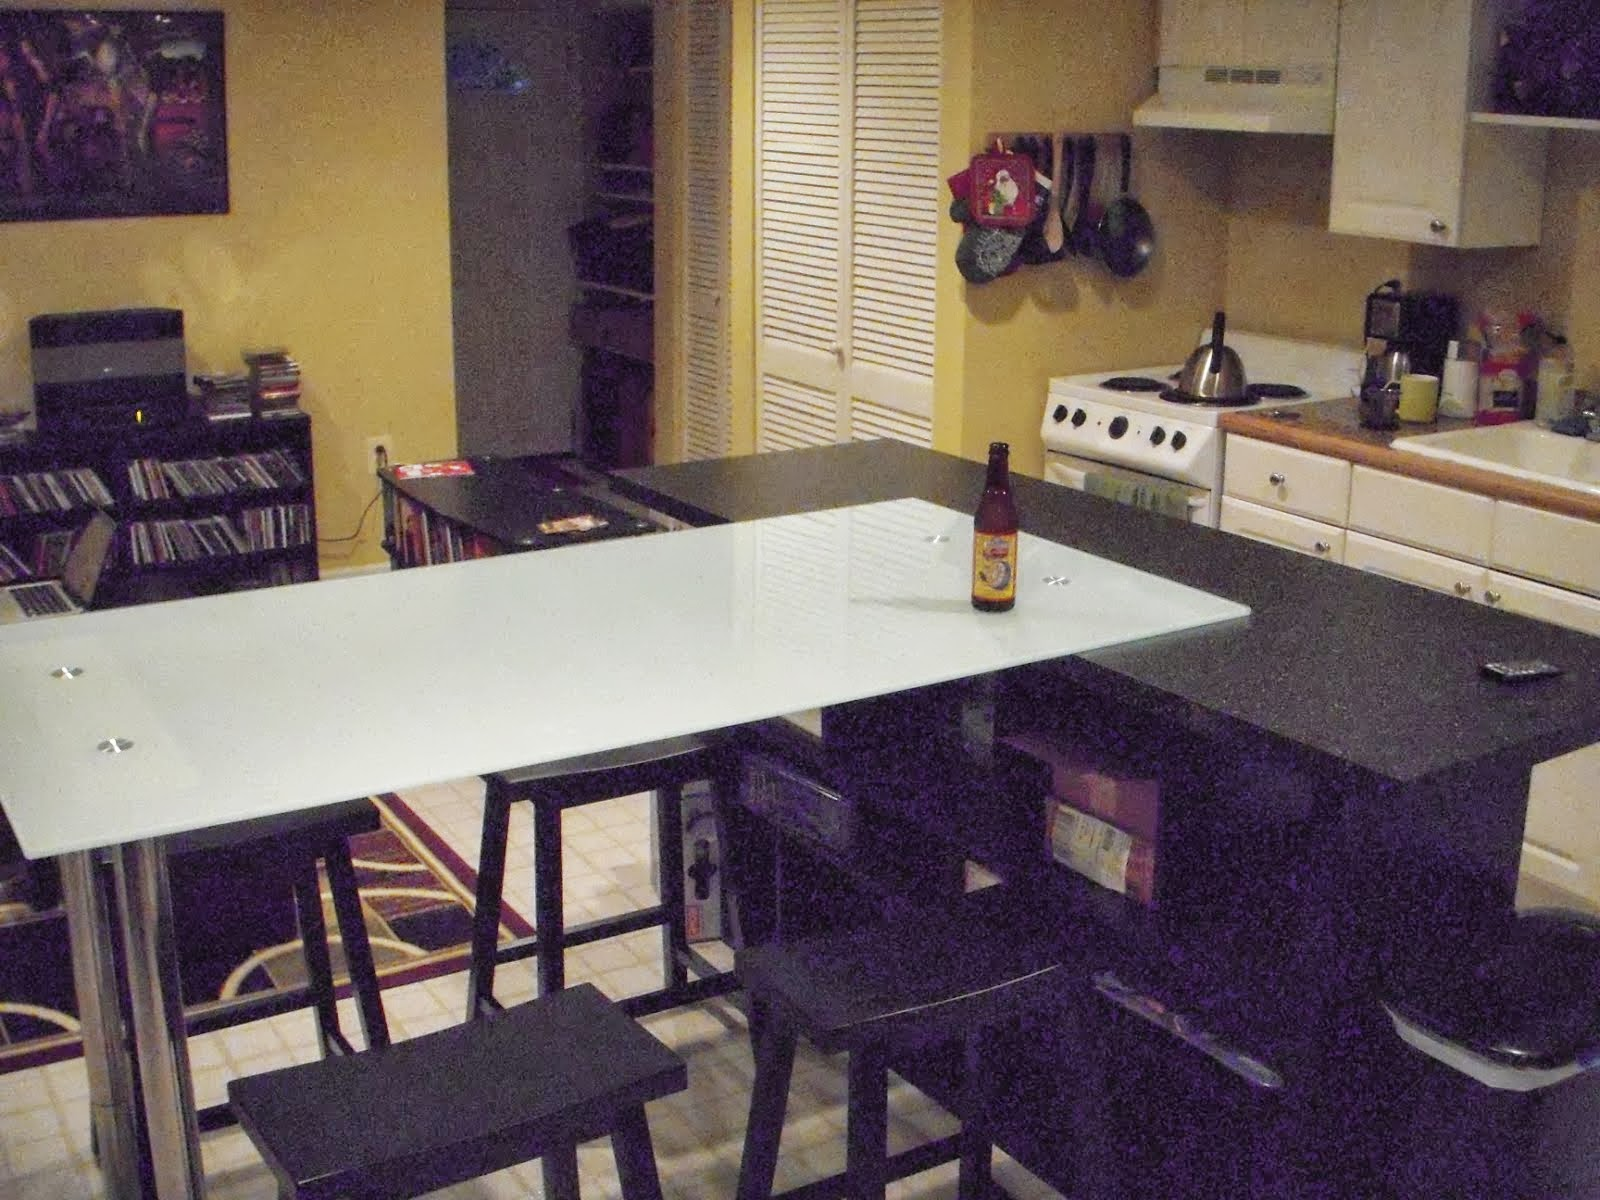 Kitchen Island As Dining Table t kitchen island/dining table - ikea hackers - ikea hackers